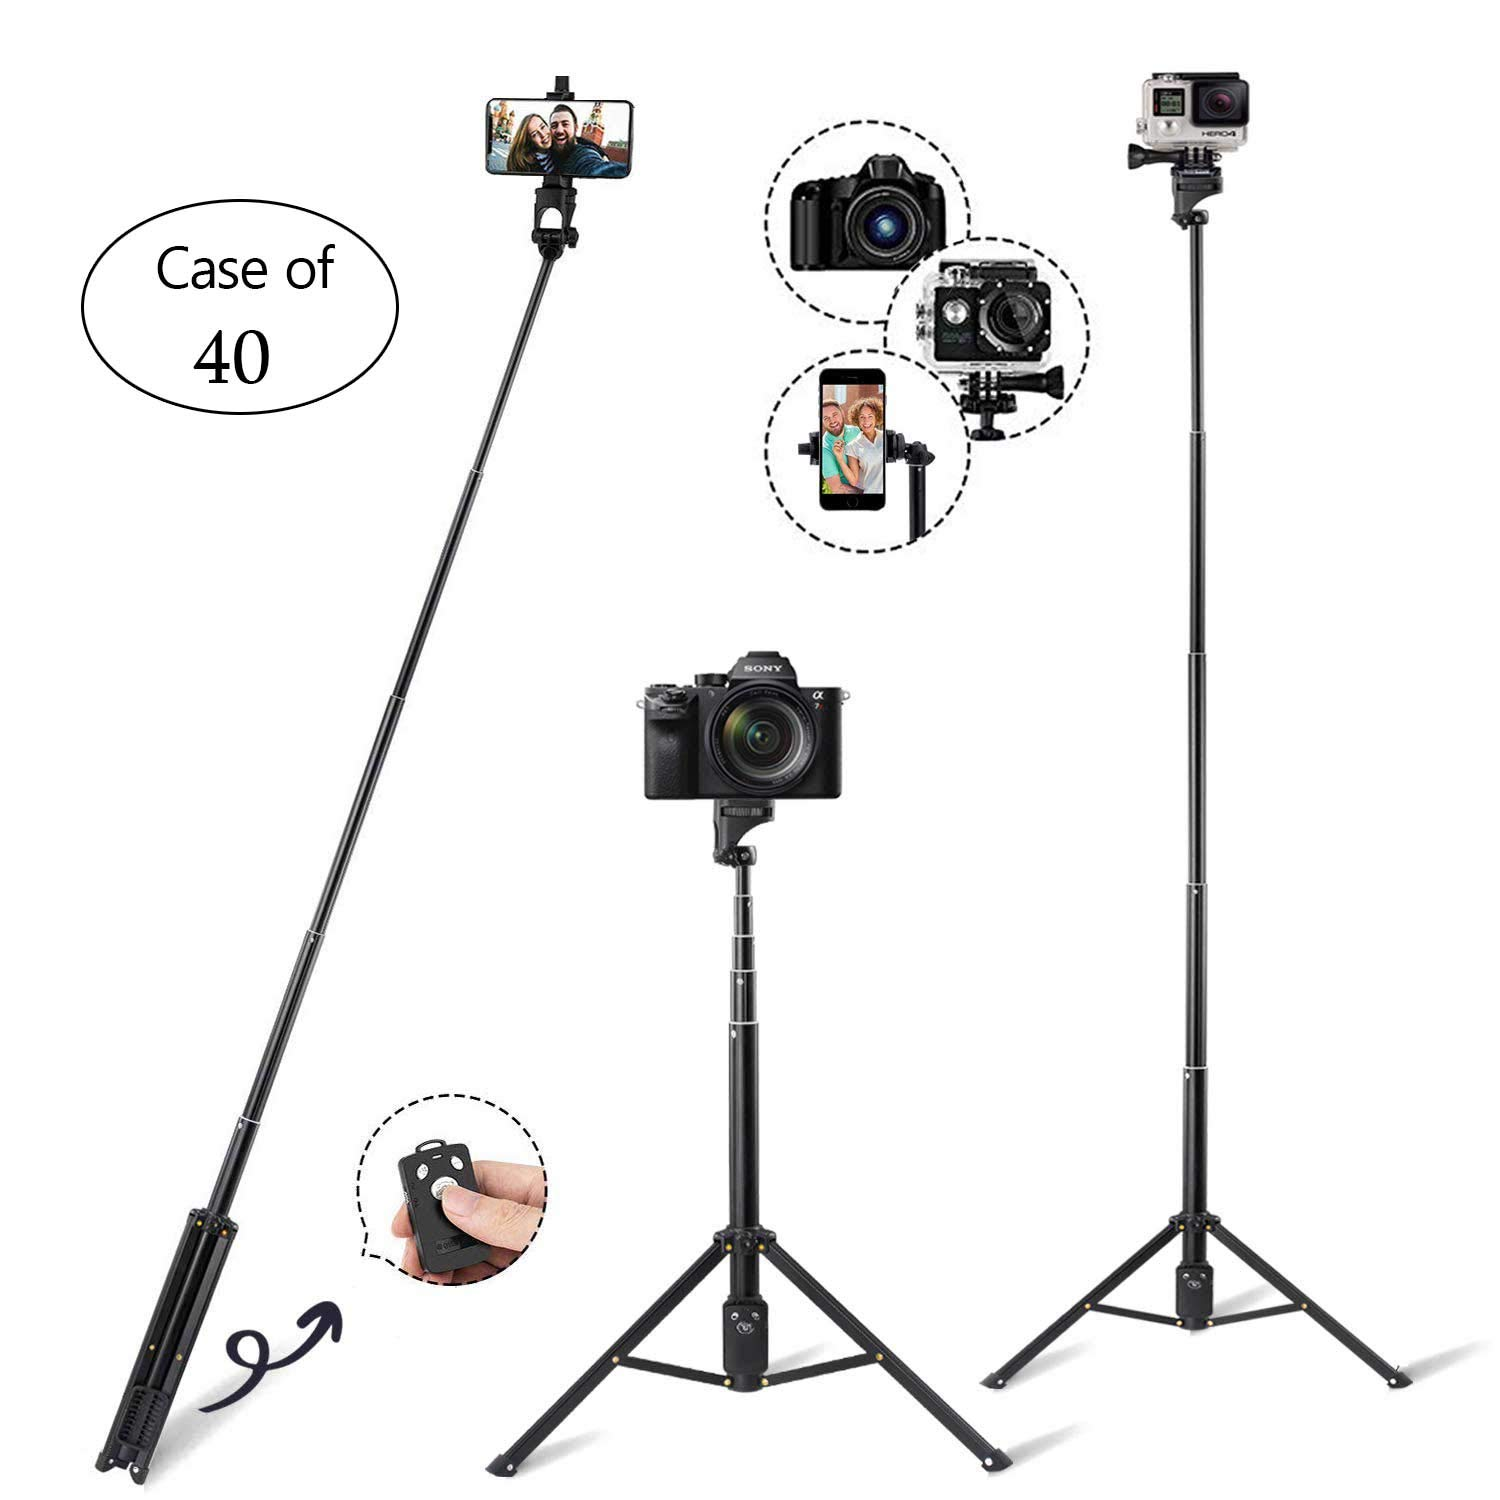 Case of 40, Eocean Selfie Stick Tripod, 54-Inch Extendable Selfie Stick with Wireless Remote, Compatible with iPhone/Galaxy Note 9/S9/S9 Plus/Google/Huawei/Xiaomi